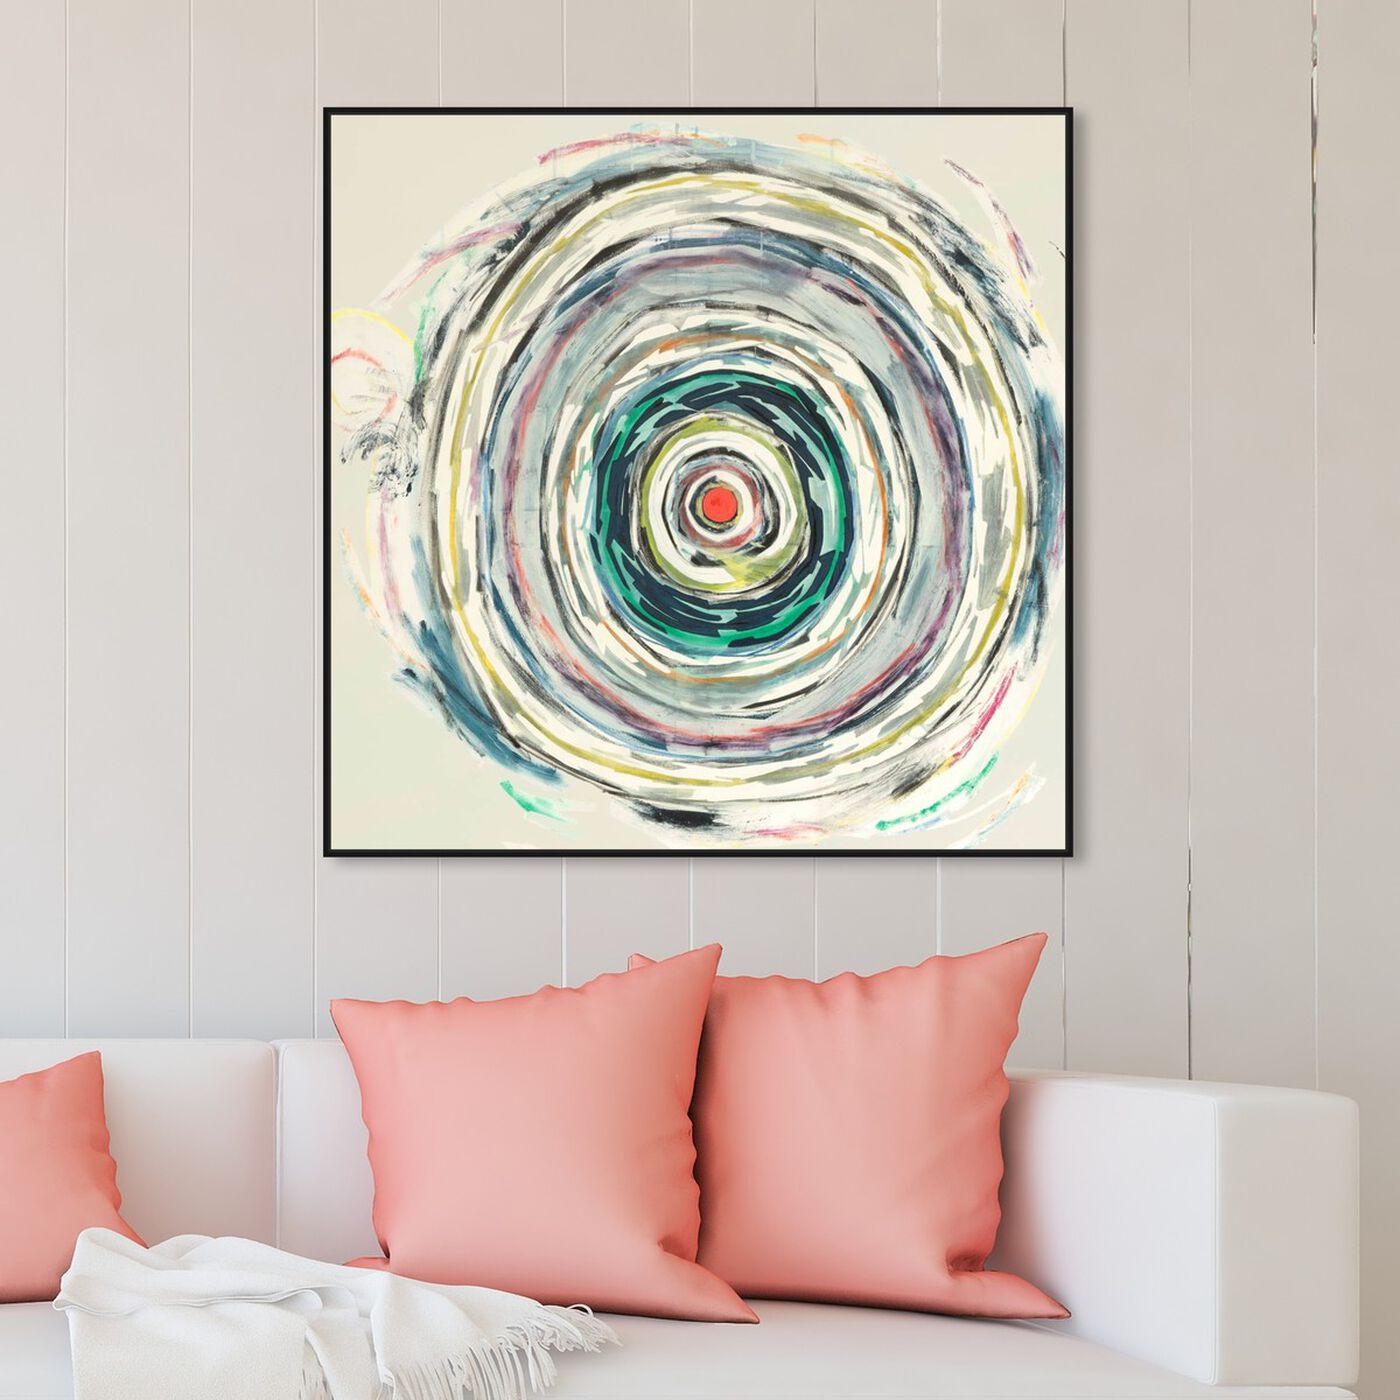 Hanging view of Sai - Pictis Spiralis III 1NM1760 featuring abstract and paint art.